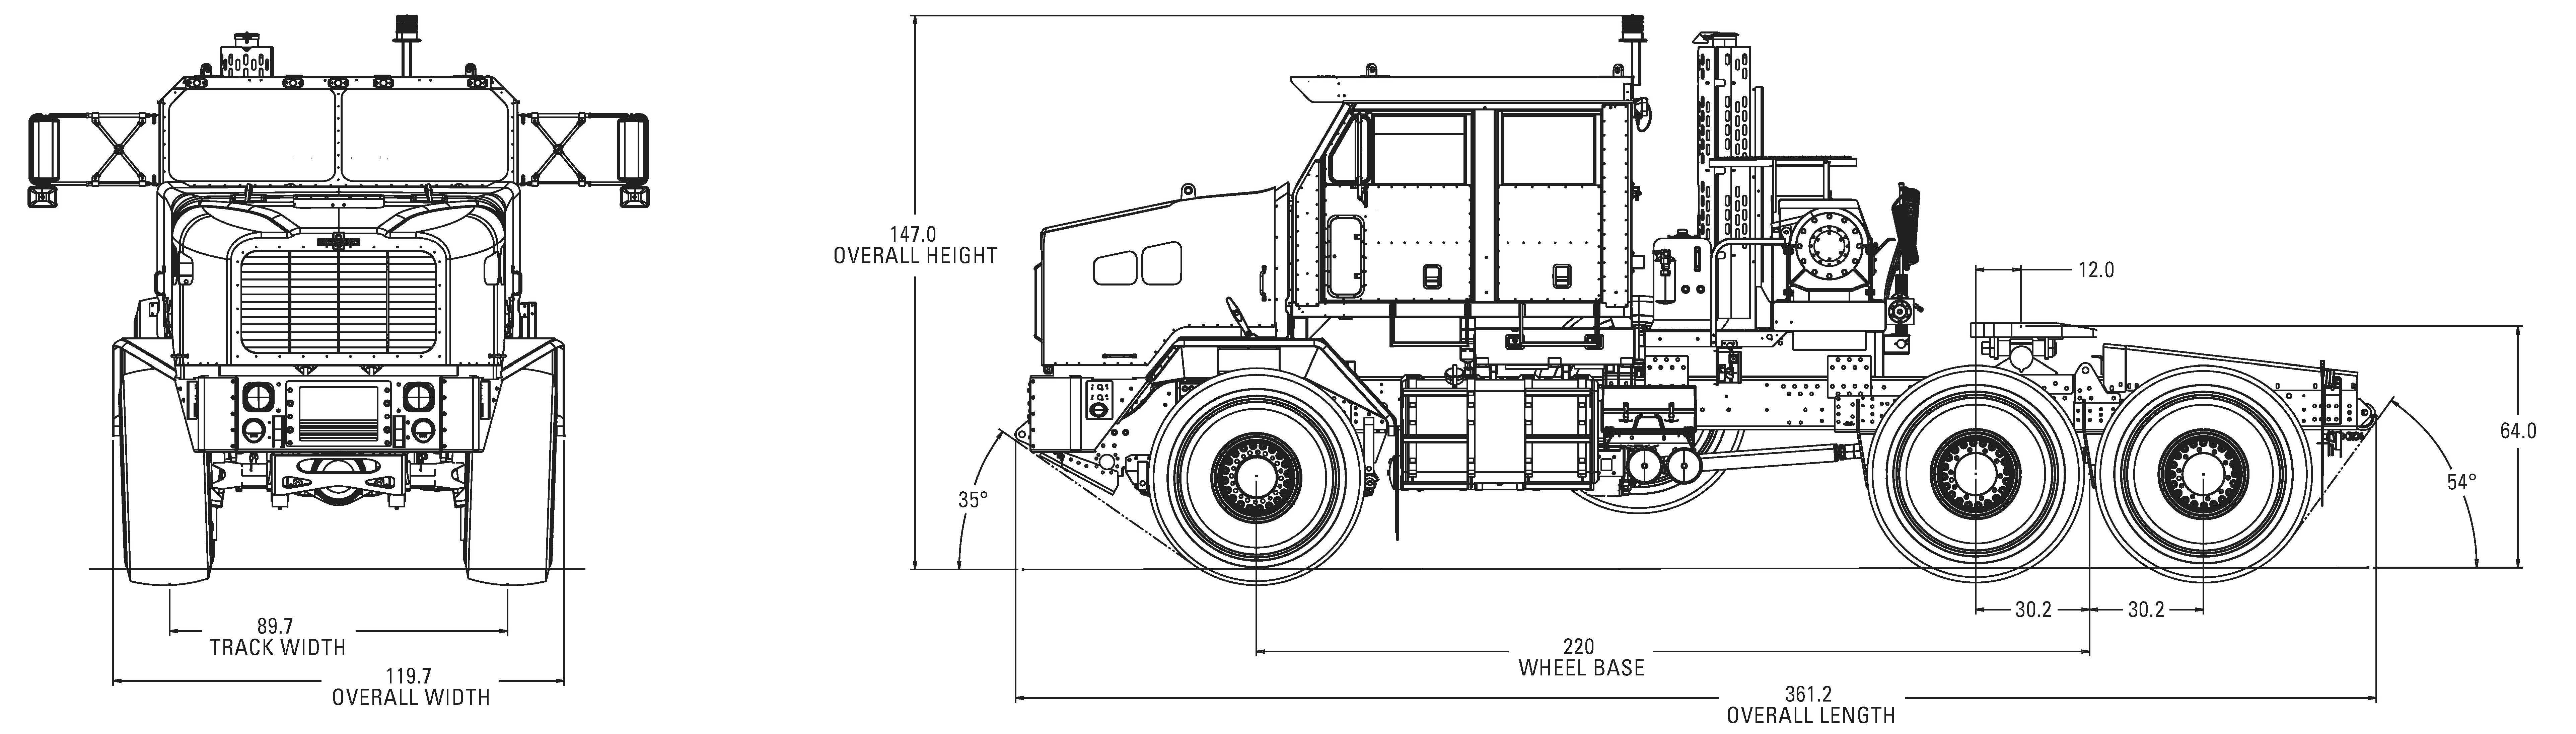 Oshkosh Het 2009 Blueprint Download Free Blueprint For 3d Modeling